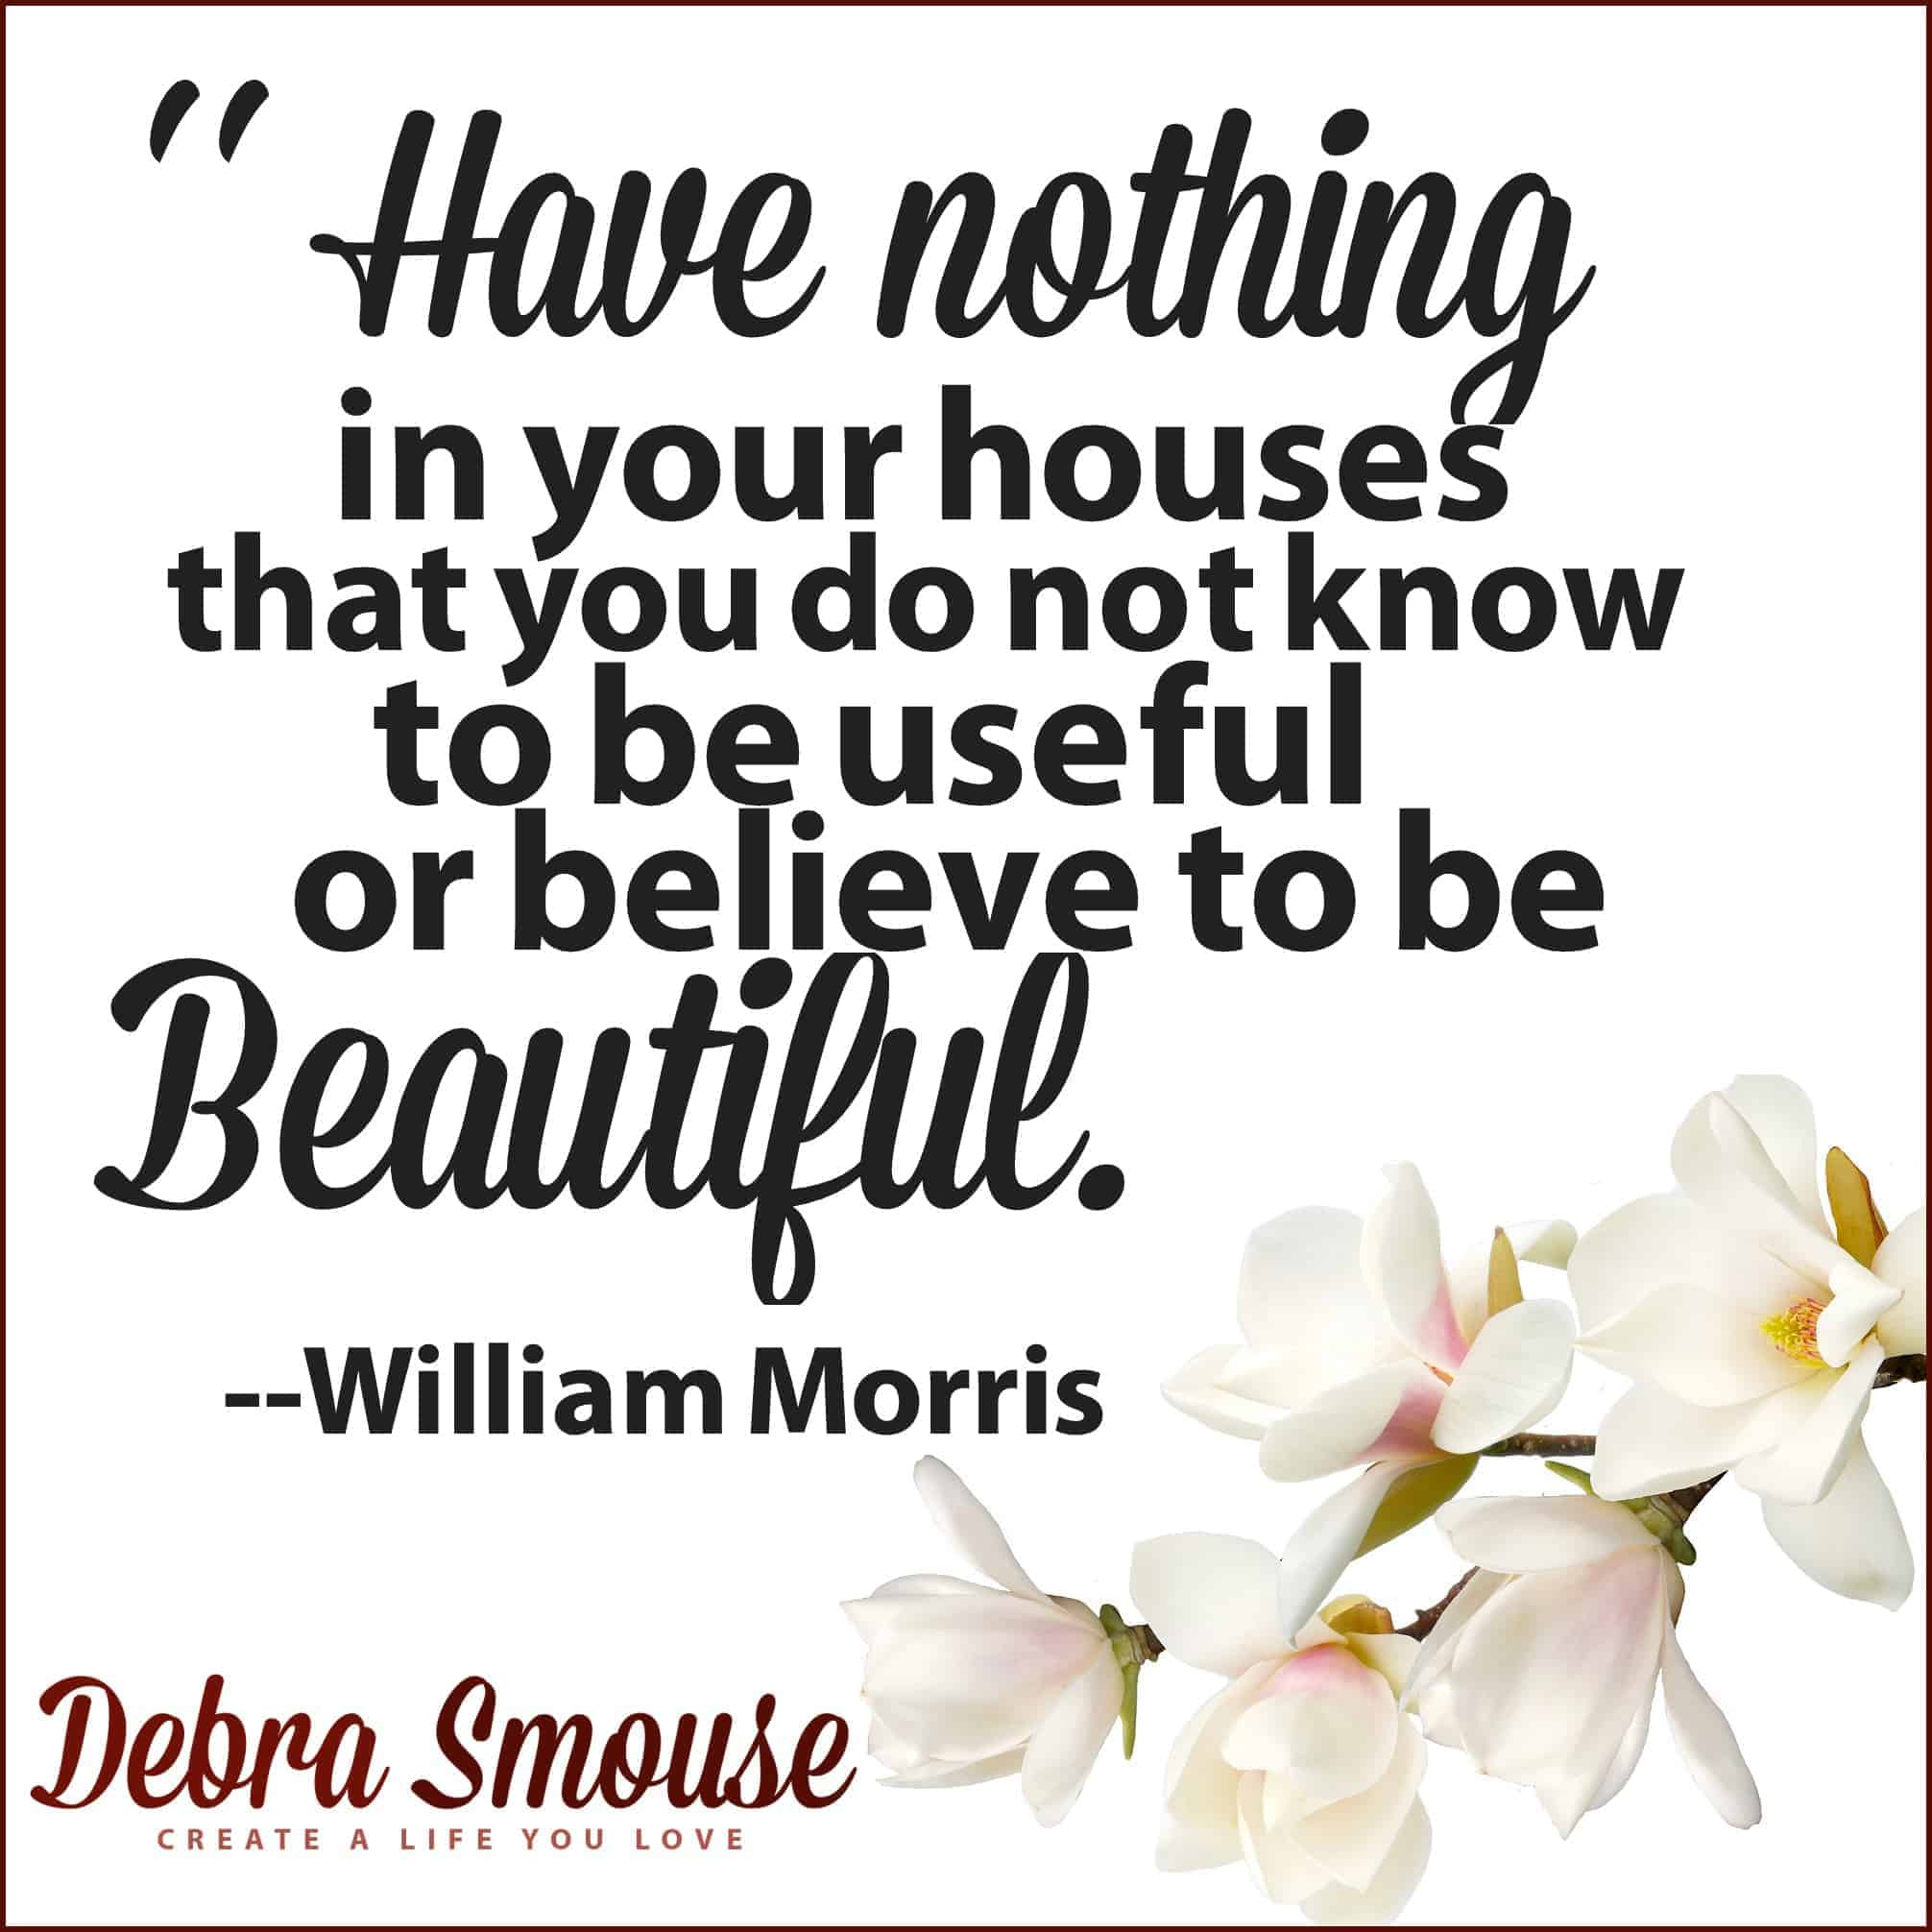 Inspiring Decluttering and Organization Quotes gathered by Debra Smouse